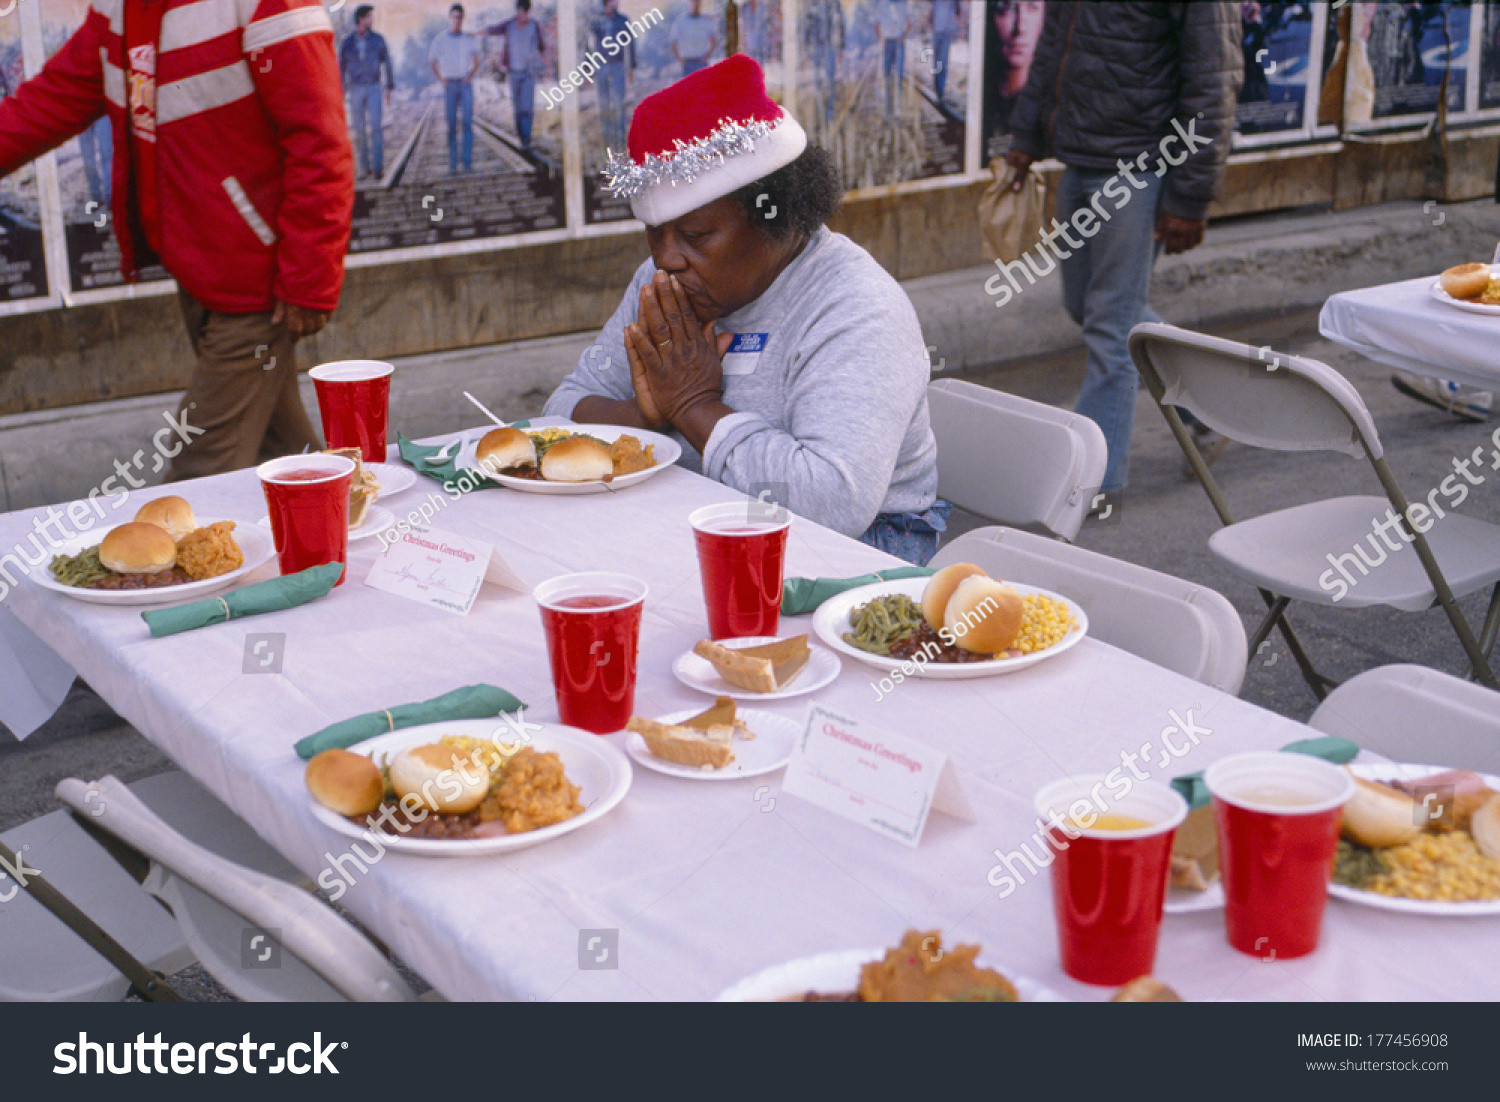 Christmas Dinners Los Angeles  A Woman Giving Thanks For Her Christmas Dinner Los